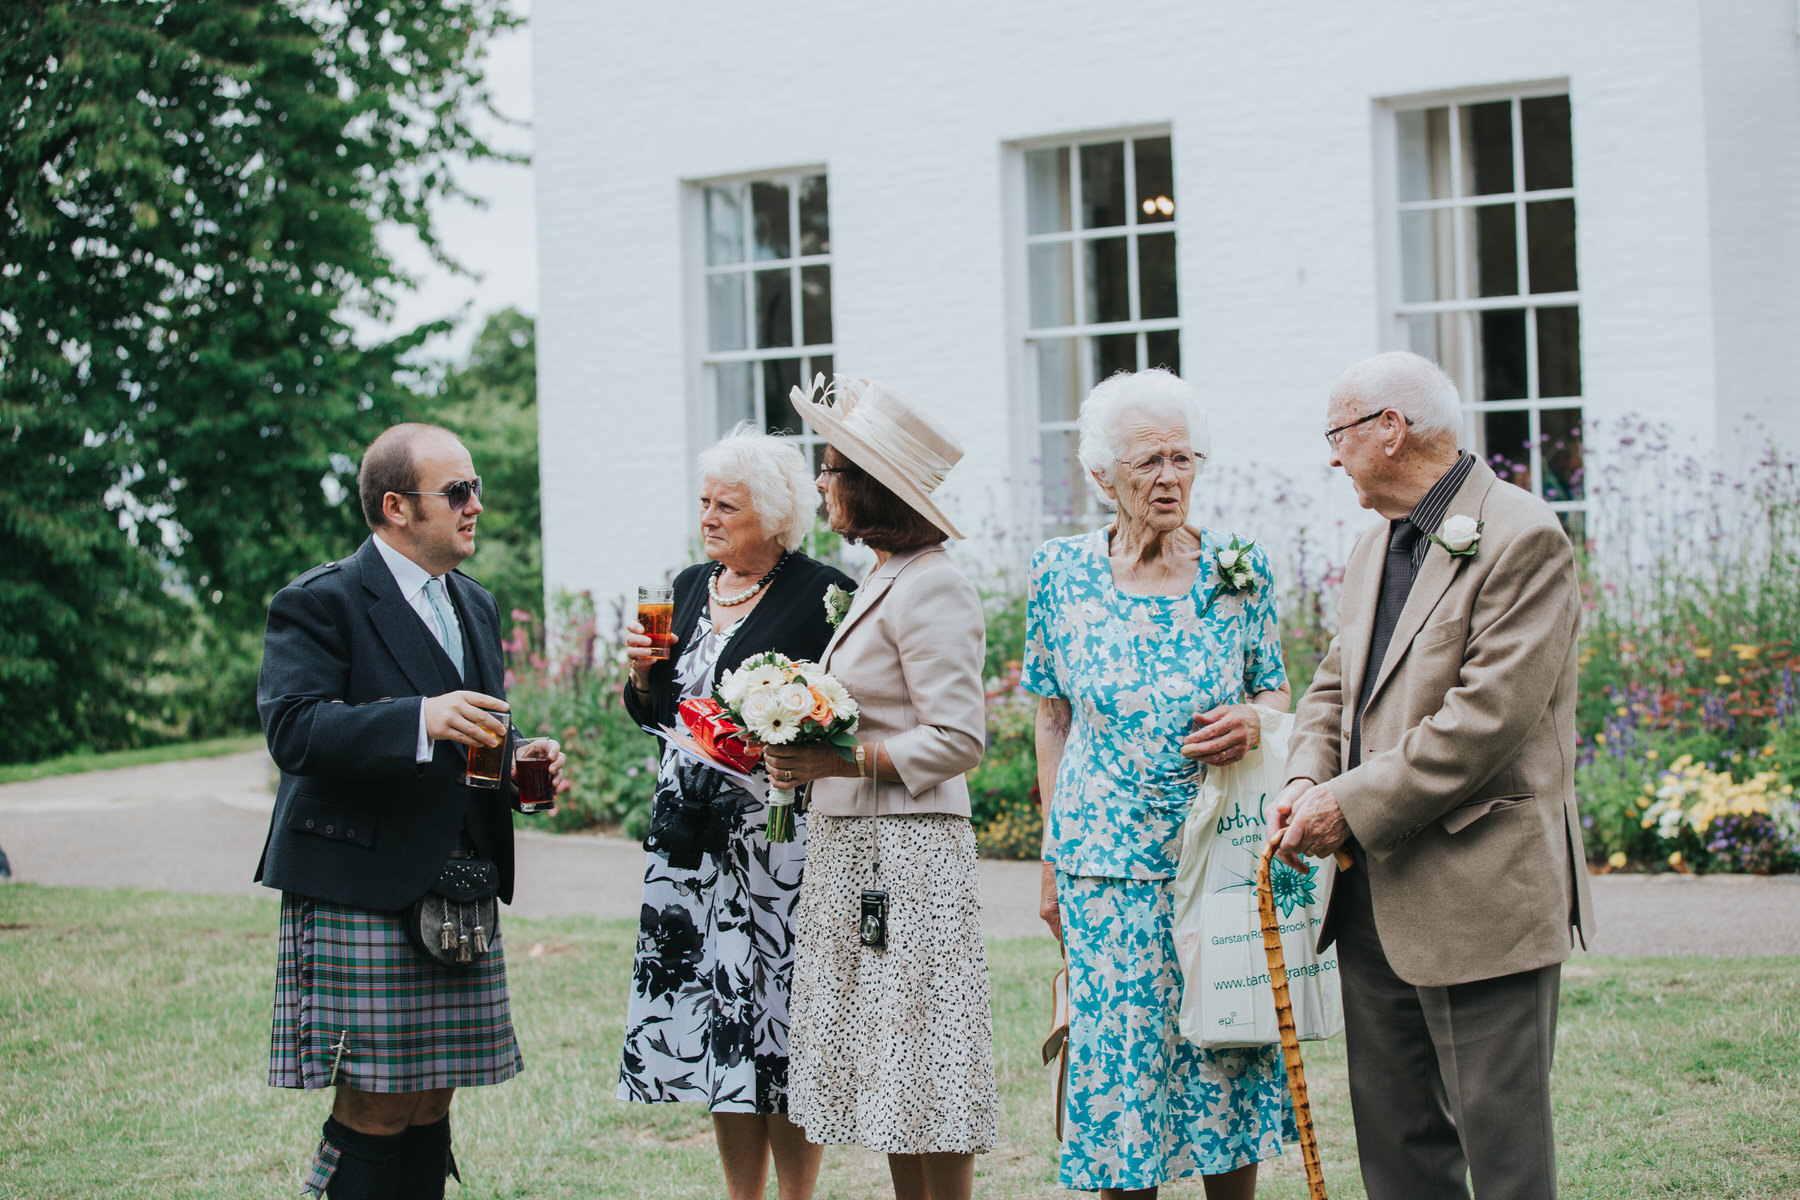 172-Pembroke Lodge South Lawn wedding drinks reception.jpg